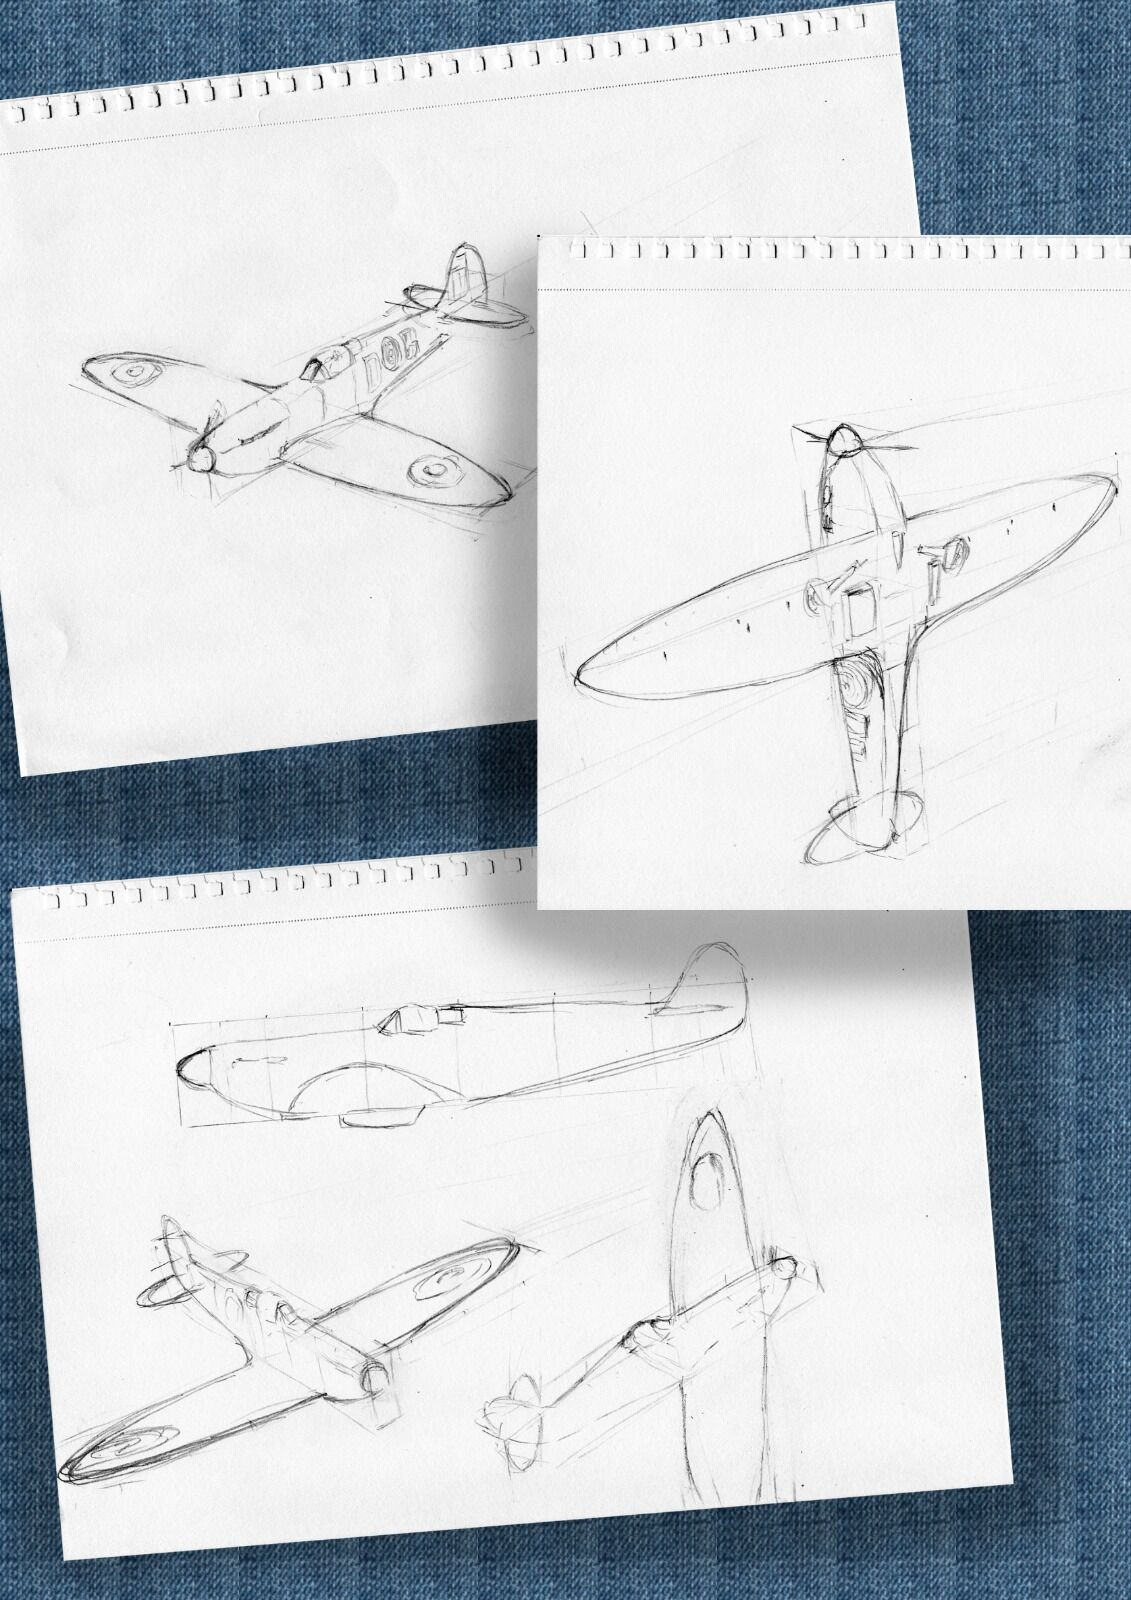 First Spitfire sketches